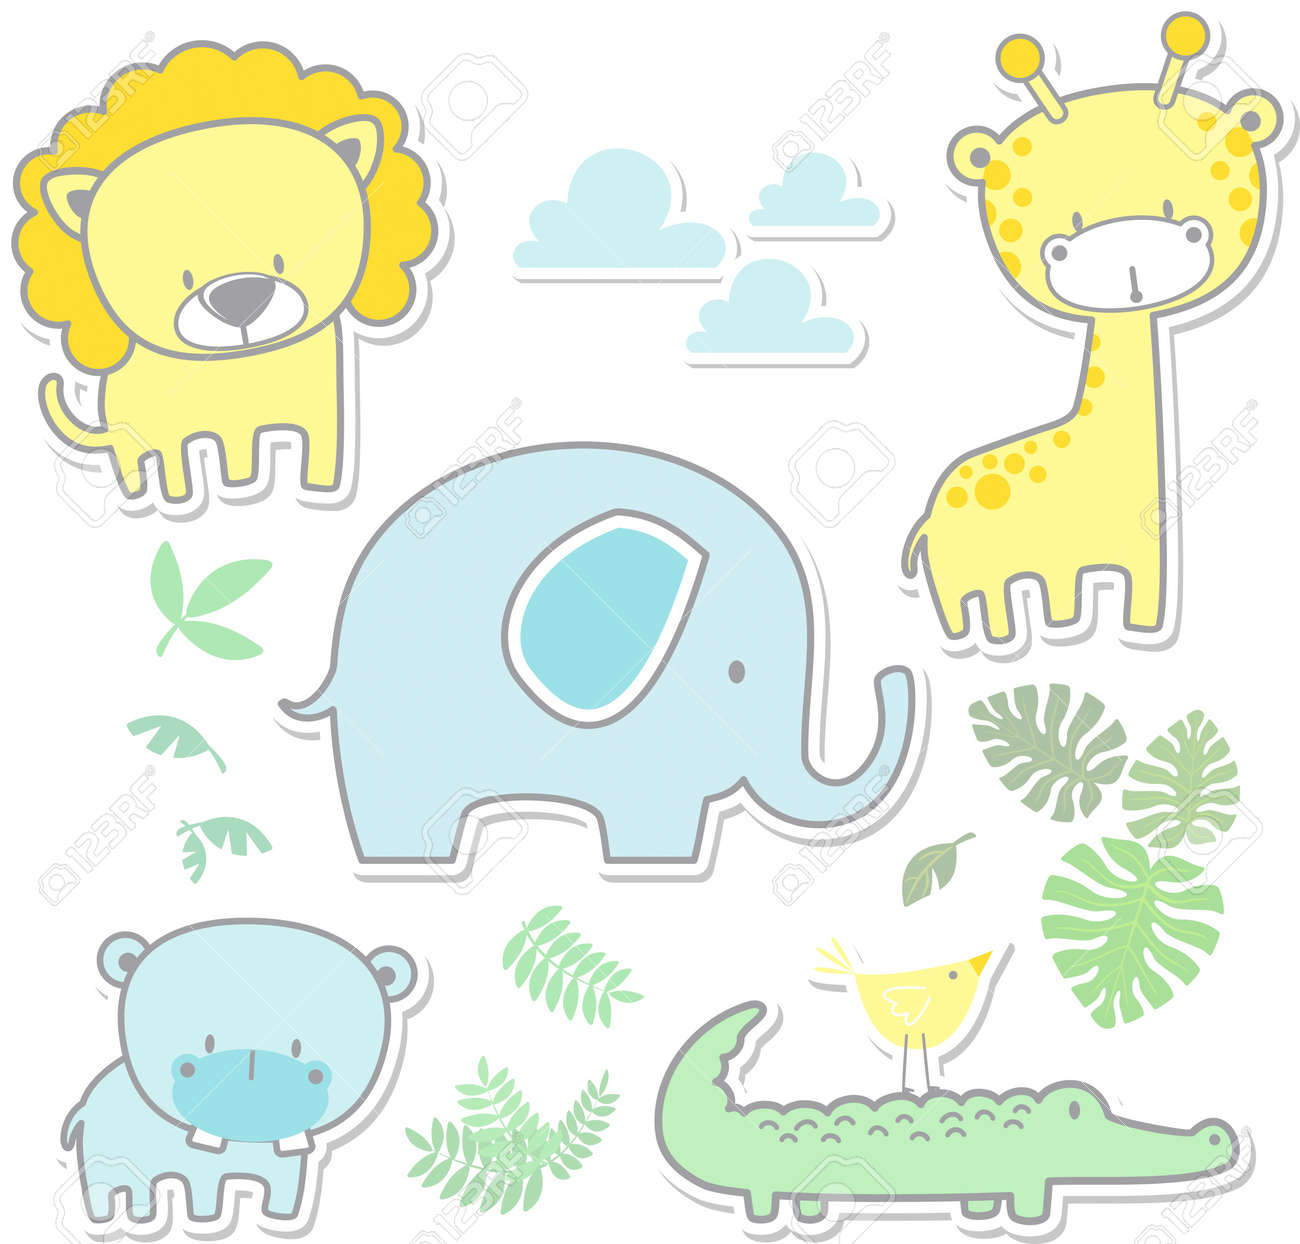 Vector Cartoon Illustration Of Six Cute Baby Animals And Jungle